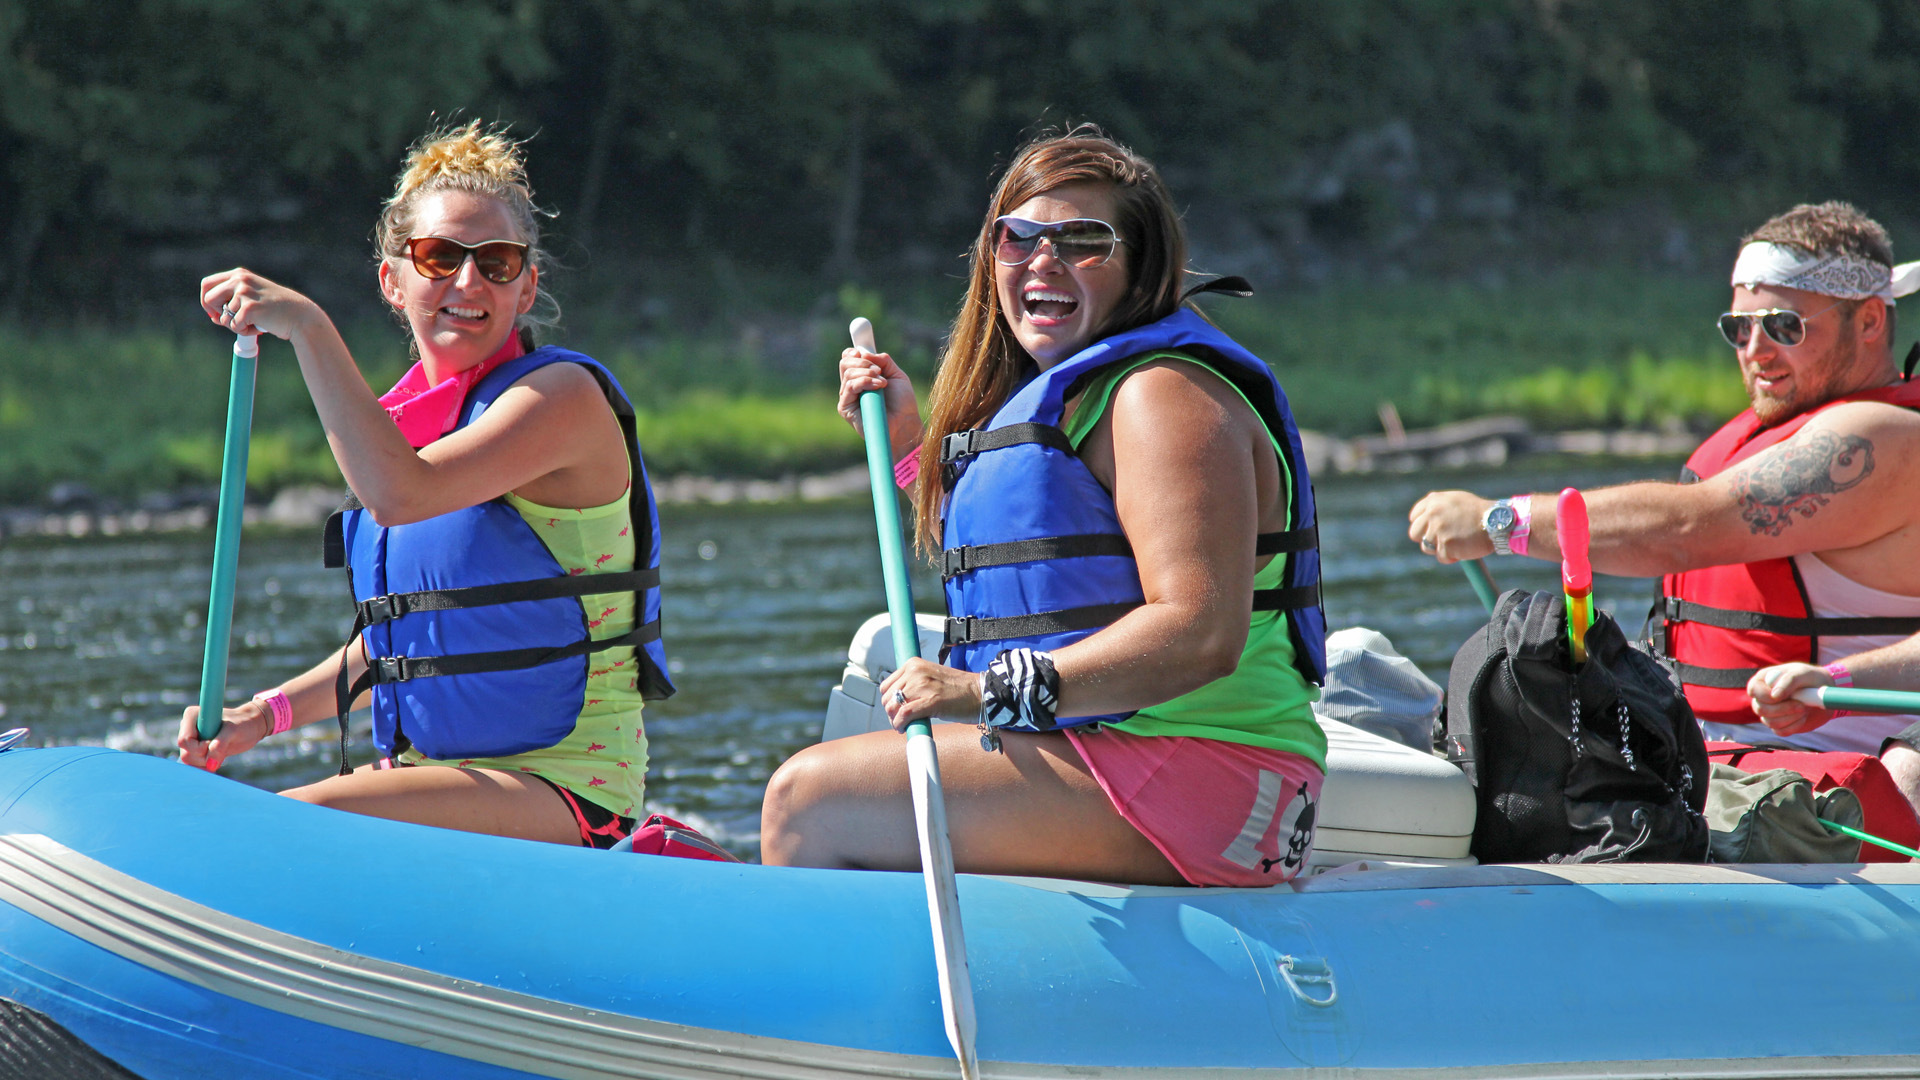 friends in raft enjoying a sunny day Indian Head Canoeing Rafting Kayaking Tubing Delaware River